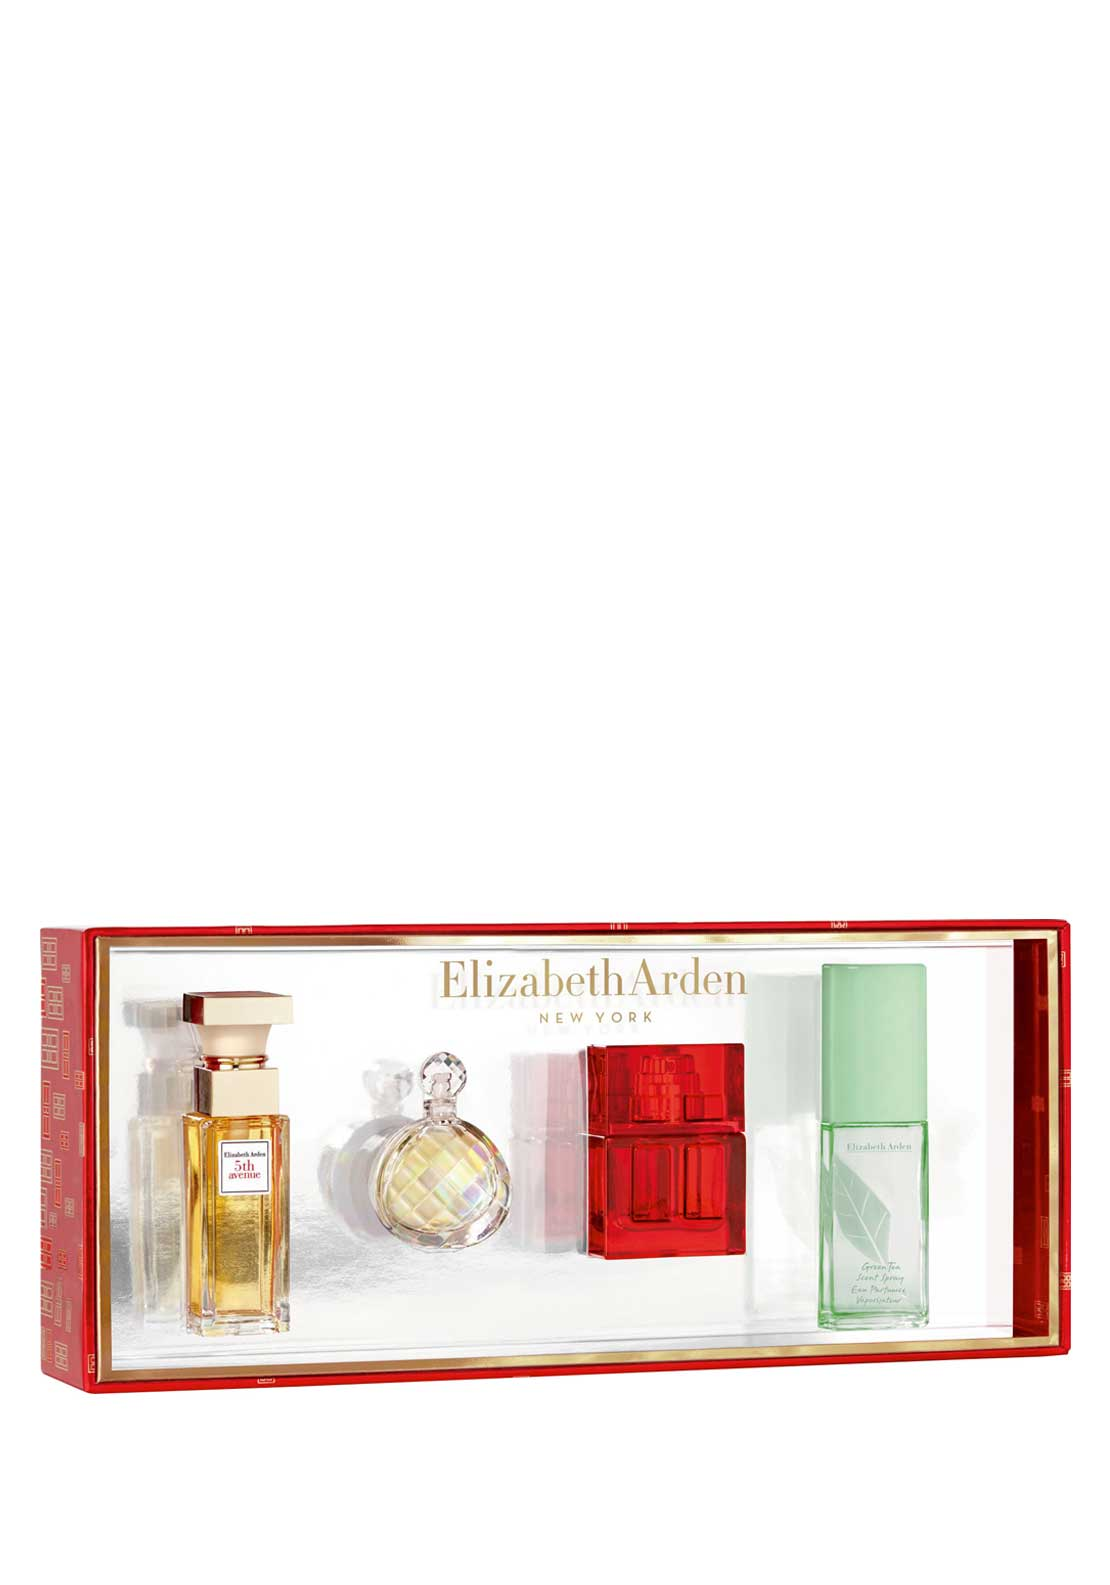 Elizabeth Arden Mini Fragrance Gift Set